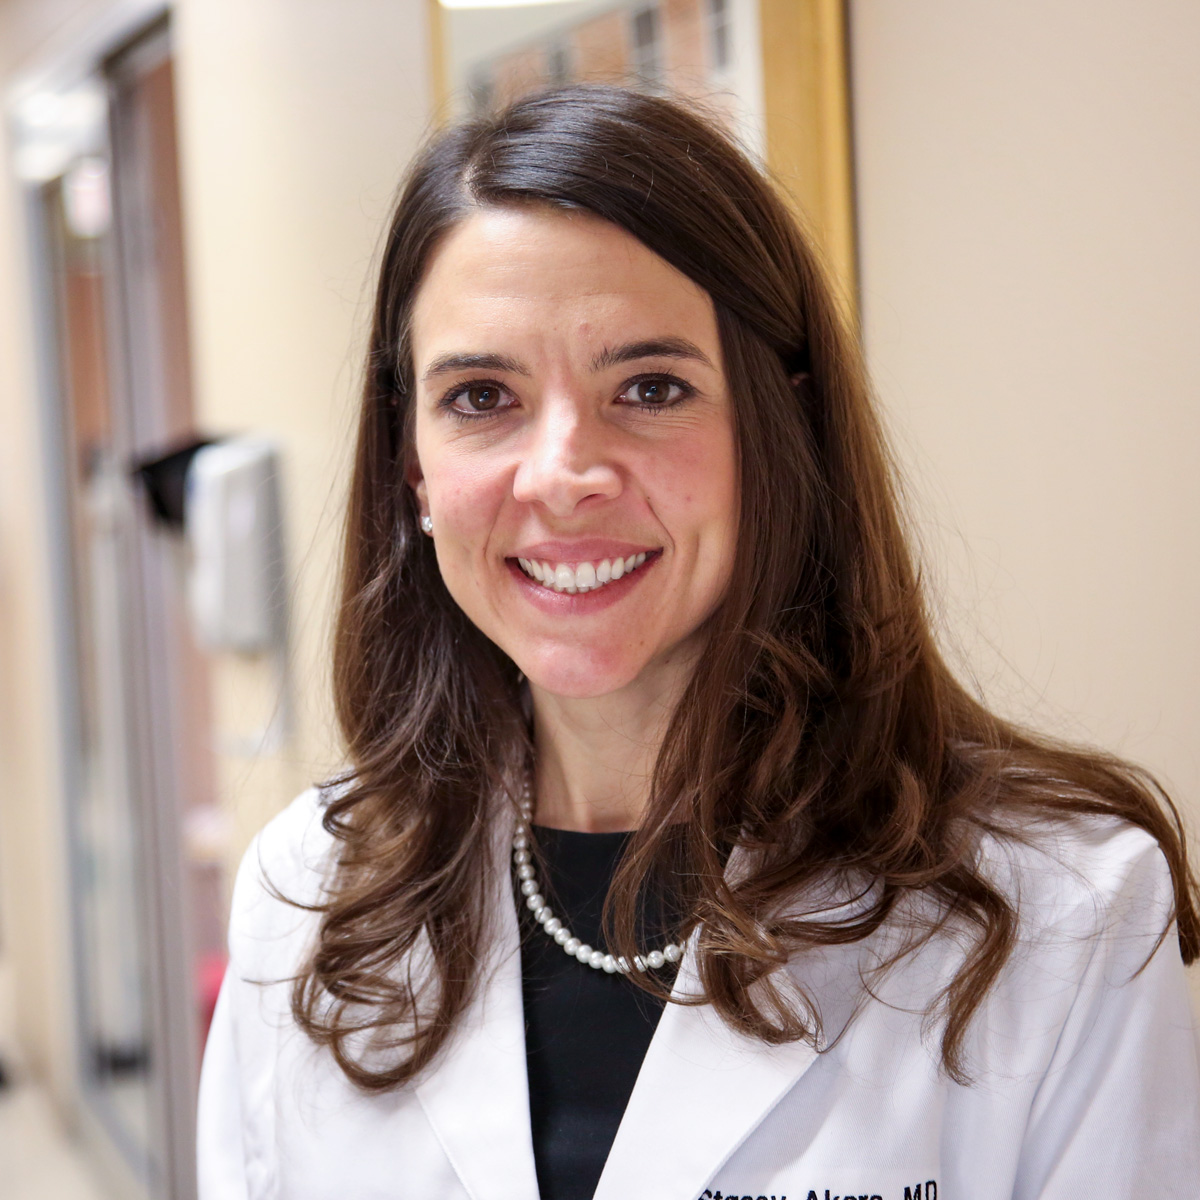 Dr. Stacey Akers